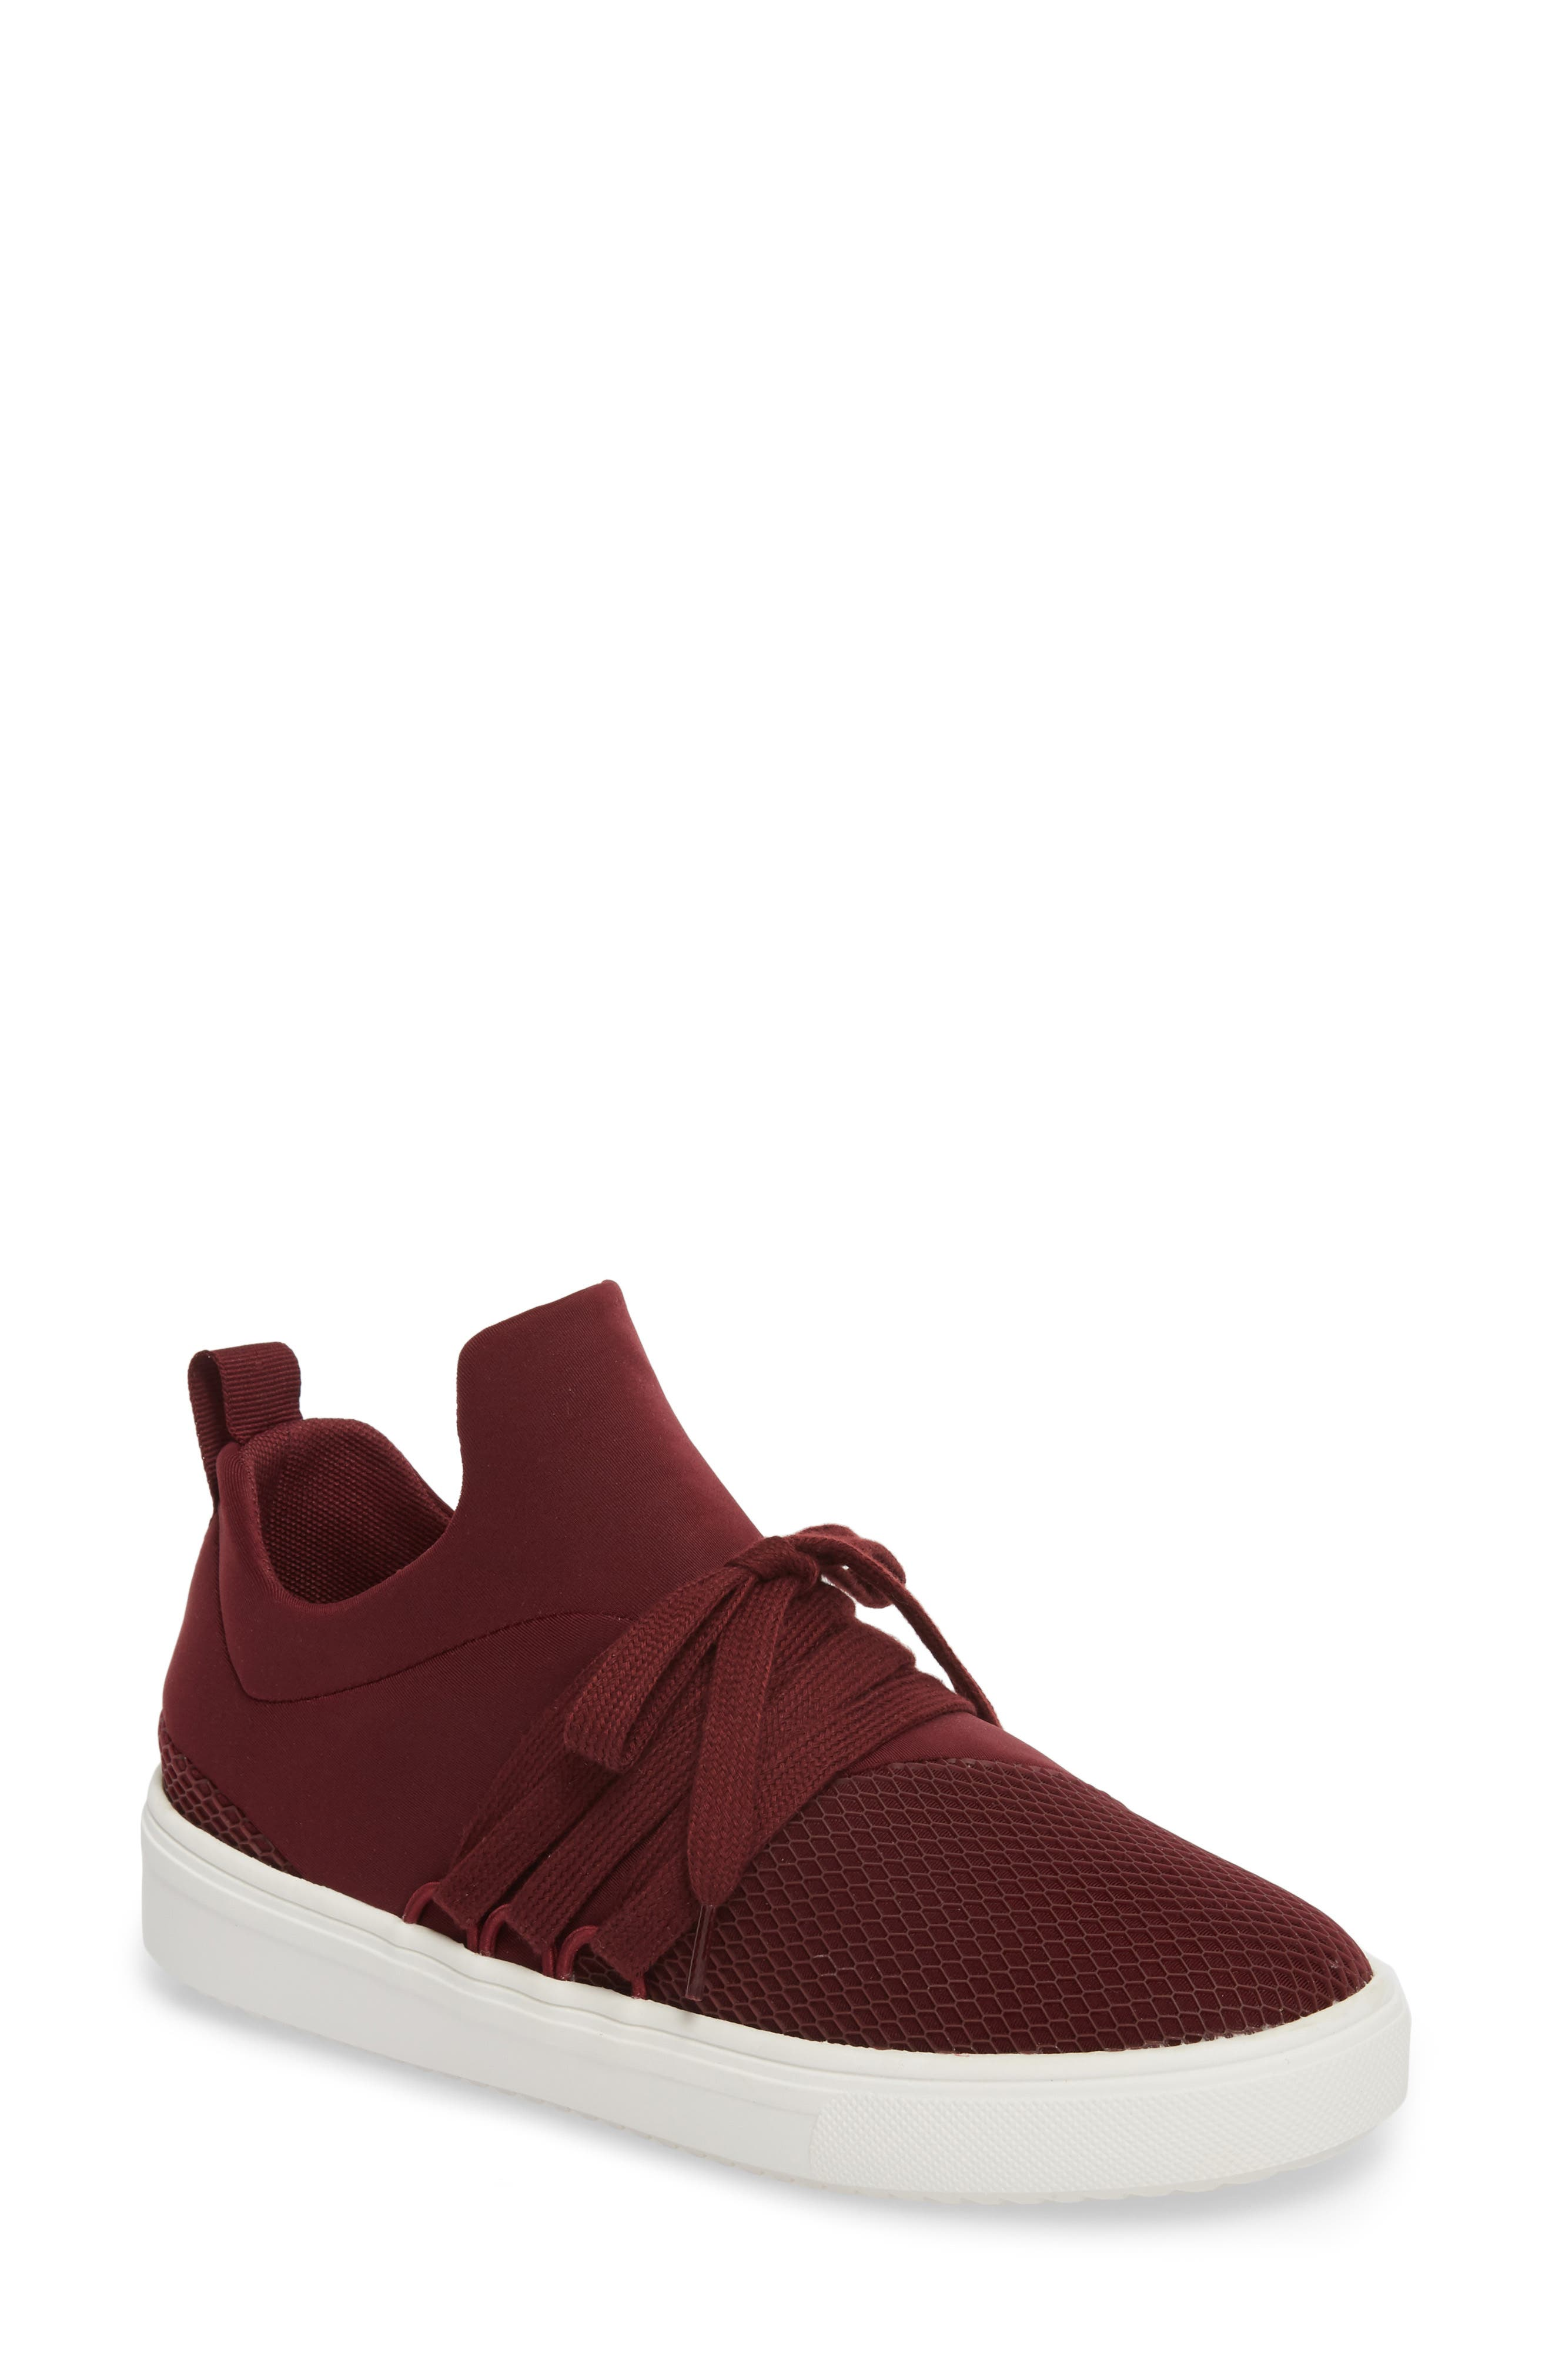 Lancer Sneaker,                         Main,                         color, Burgundy